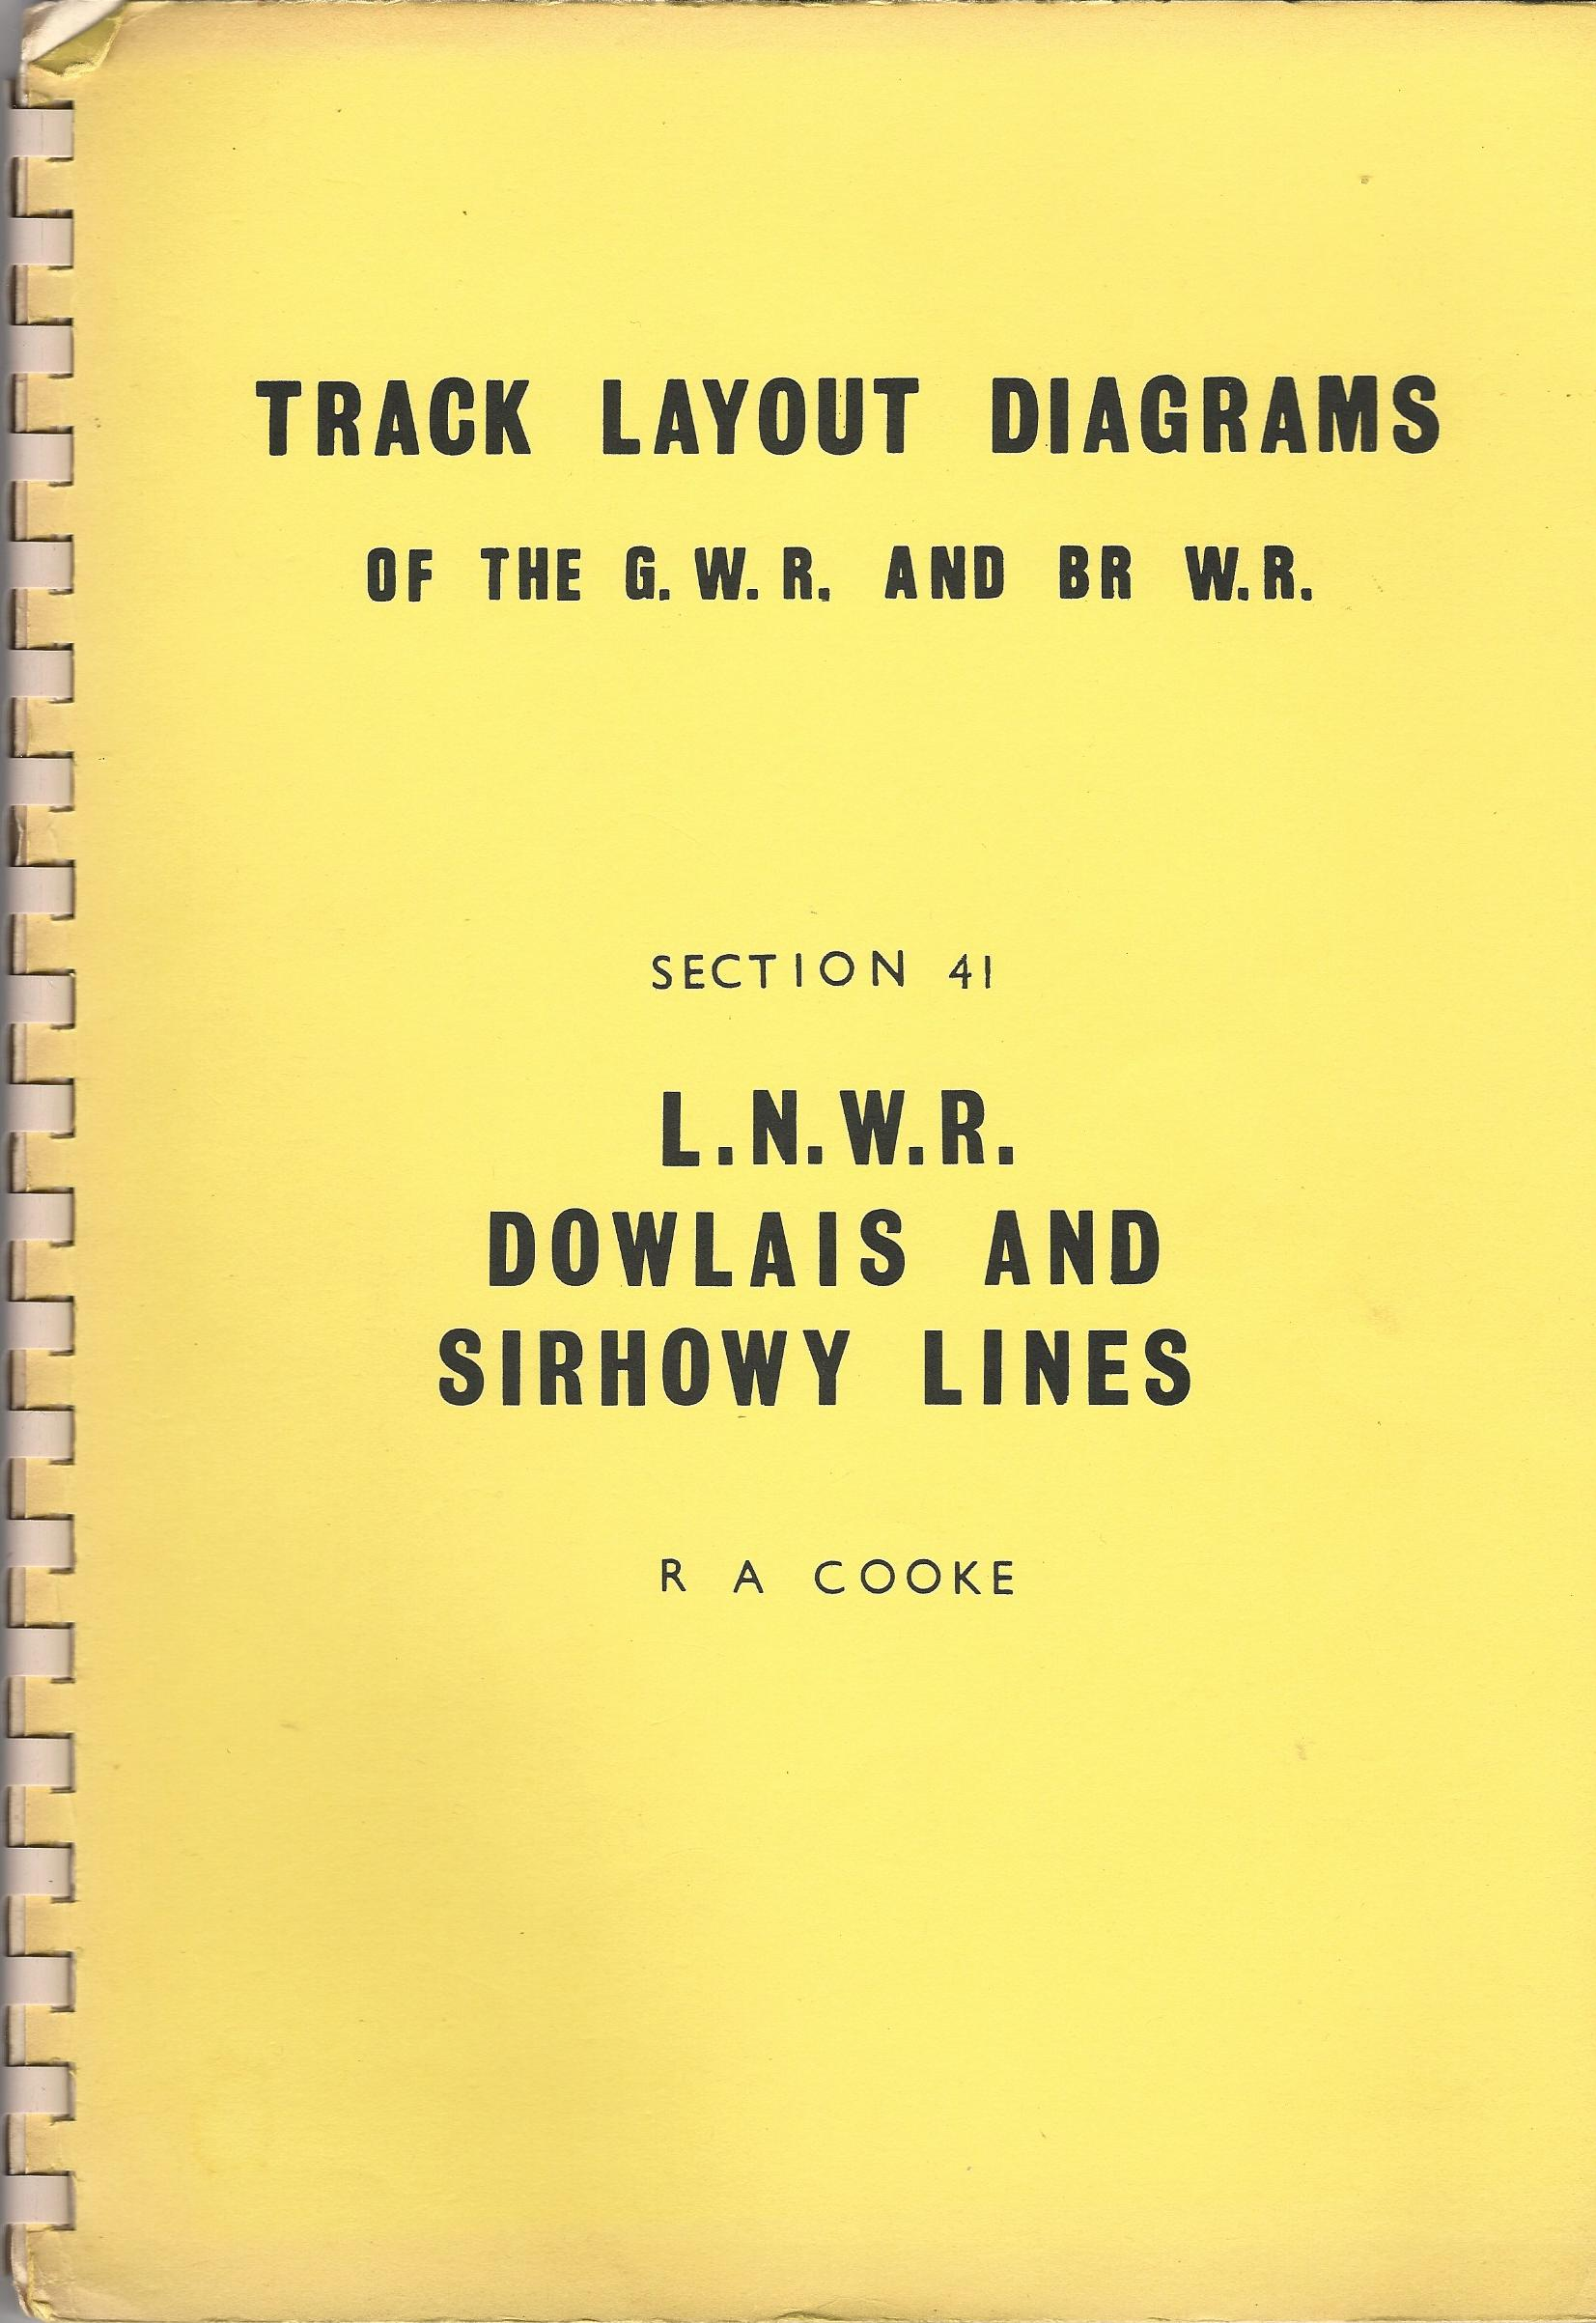 Image for Track Layout Diagrams of the G.W.R. and BR W.R. - Section 41 L.N.W.R. Dowlais and Sirhowy Lines